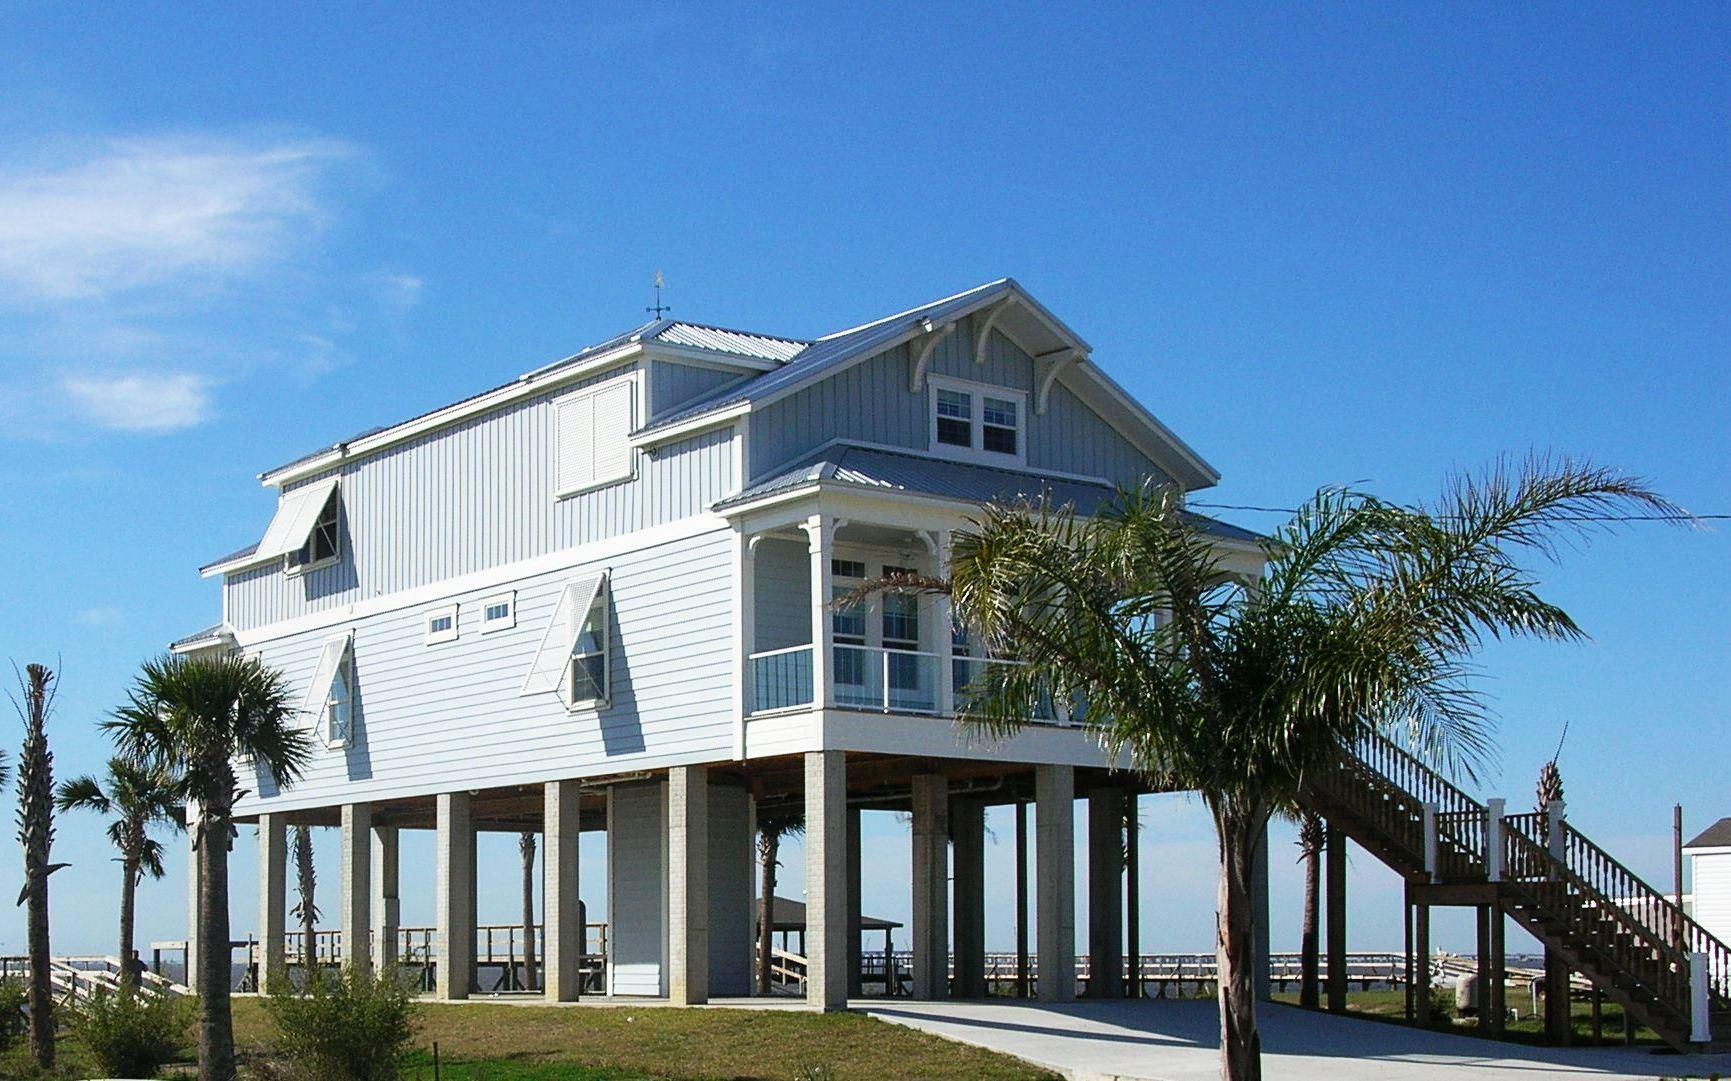 Elevated Coastal Beach House Plans With Pilings Jpg 1731 1081 House On Stilts Beach House Design Beach House Plans